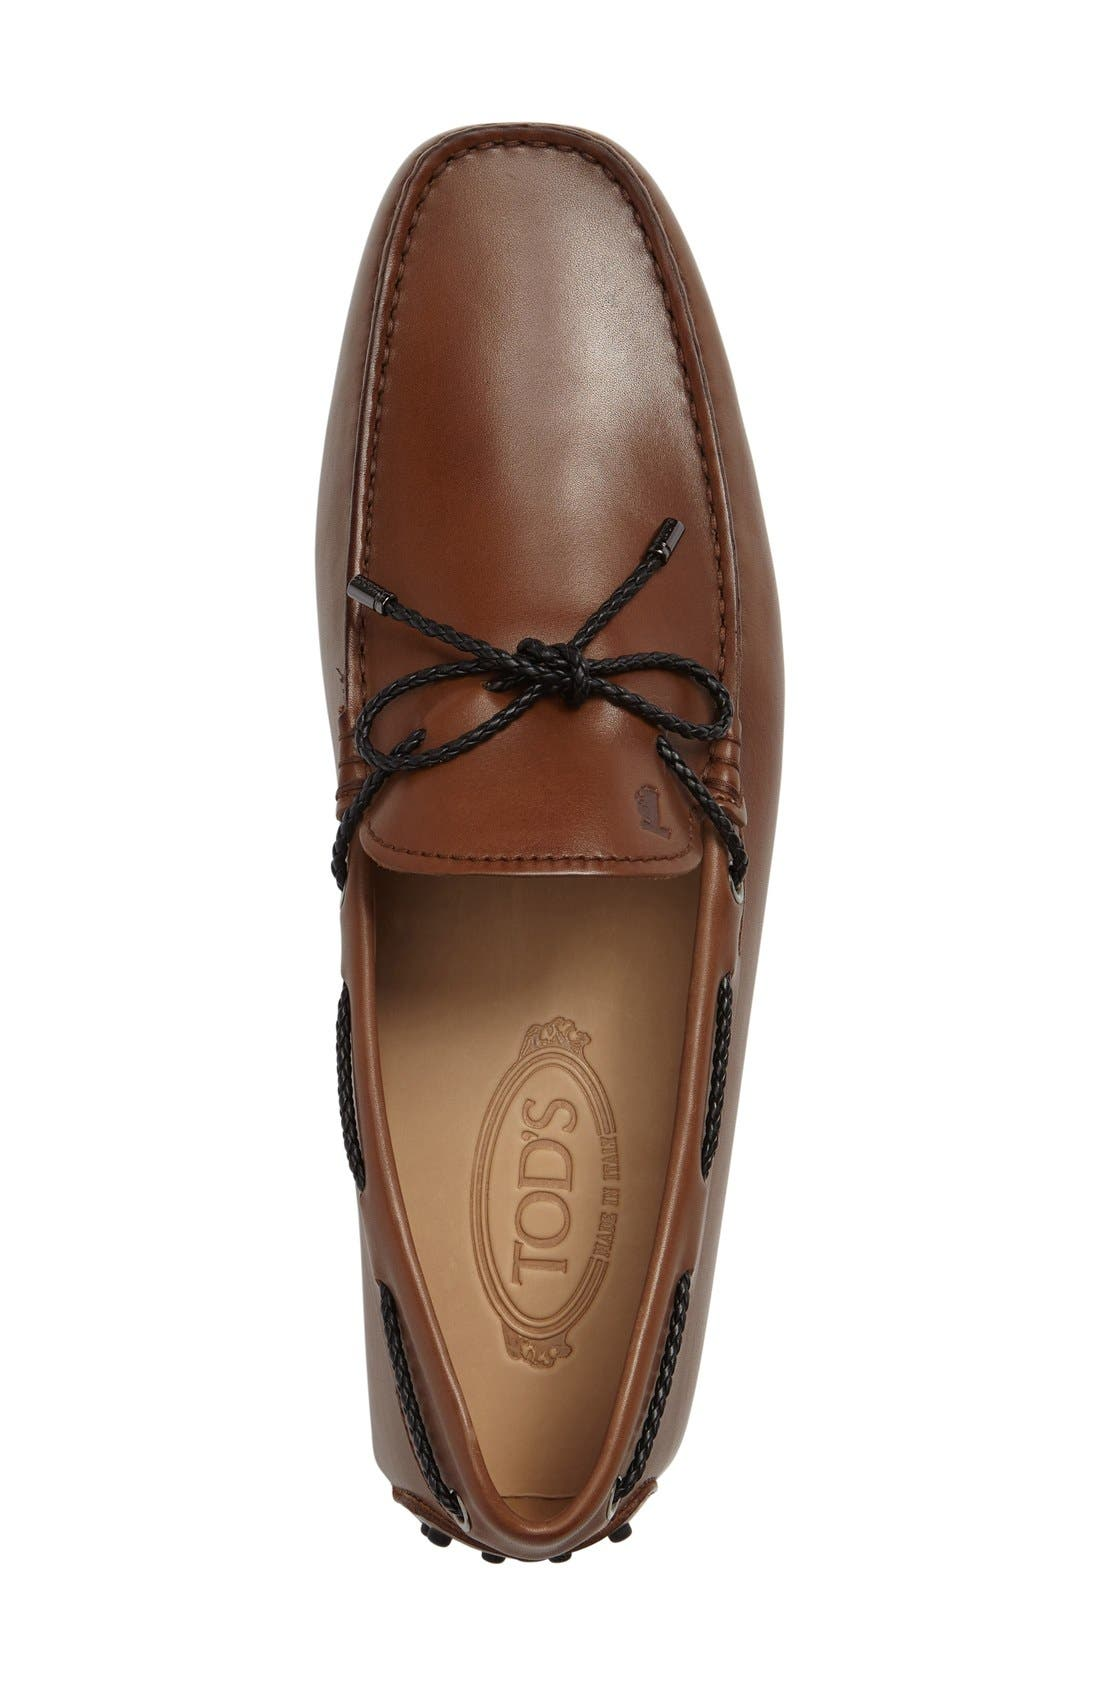 Tods Gommini Driving Shoe,                             Alternate thumbnail 3, color,                             Light Brown Leather